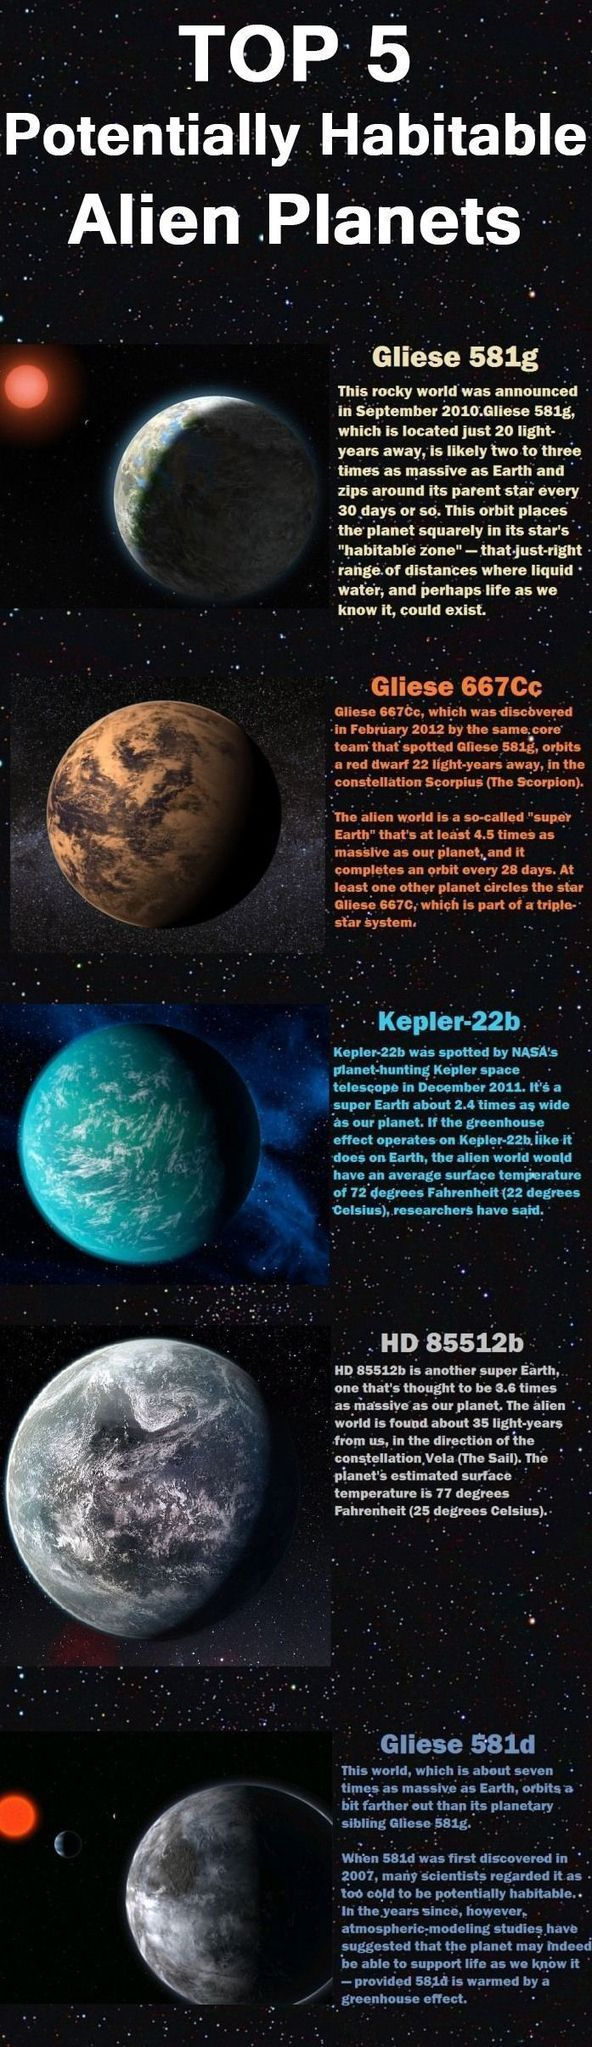 Good reference. Parker's planet could be one of these Top 5 potentially habitable exoplanets